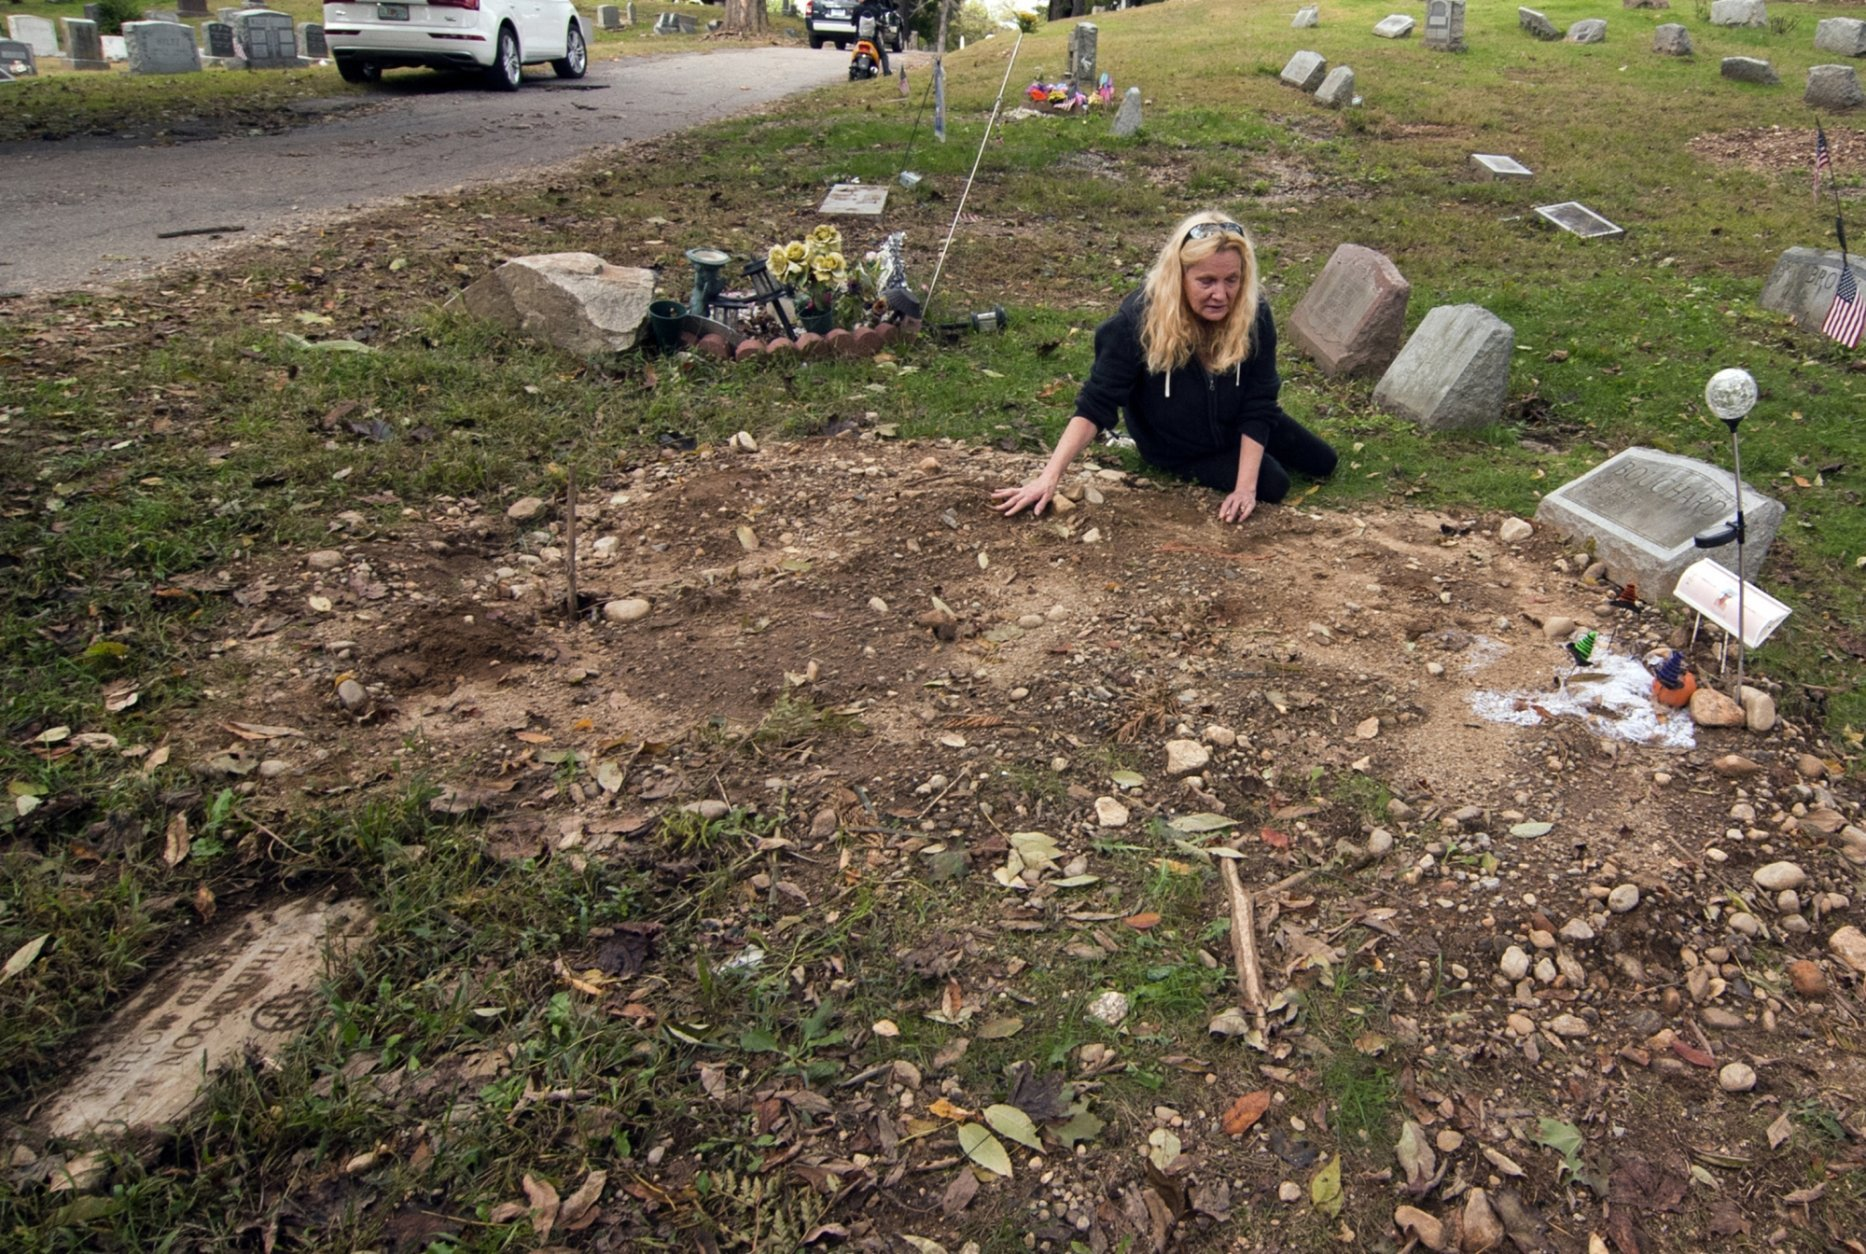 FILE - In this Oct. 3, 2018 file photo, a distraught Jean Stott, of Shelton, Conn., tries to find the exact spot where a family member is located after the tombstone, had been moved at Park Cemetery in Bridgeport, Conn. A mass desecration of graves at the cemetery has devastated dozens of families while police determine whether to file criminal charges. Authorities say gravestones and human remains at Park Cemetery in Bridgeport were moved to make way for the newly dead. (Christian Abraham/Hearst Connecticut Media via AP, File)